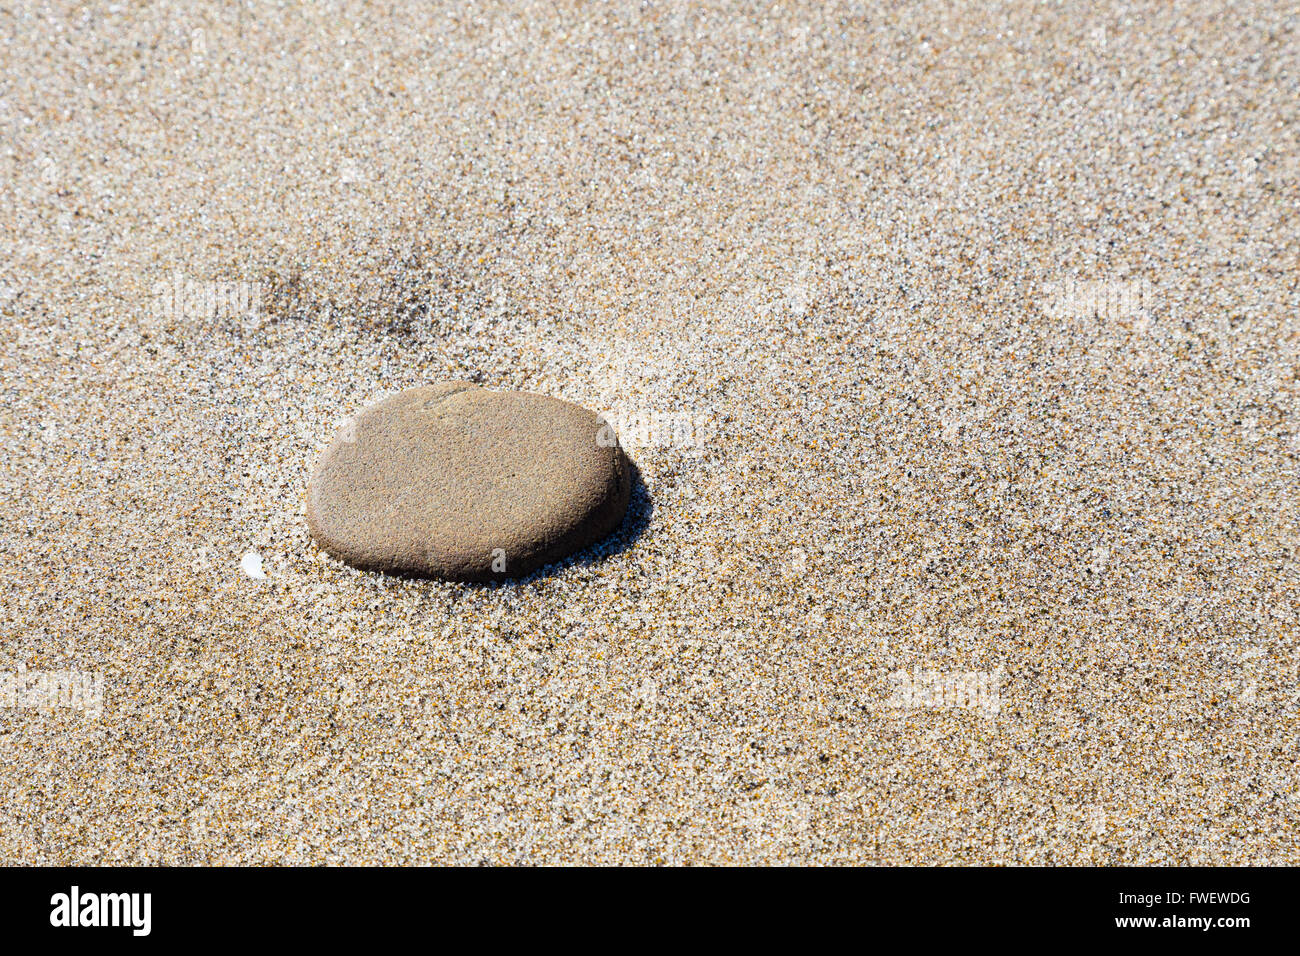 A large stone sits on some fine sand at the beach in Oregon along the coast. - Stock Image